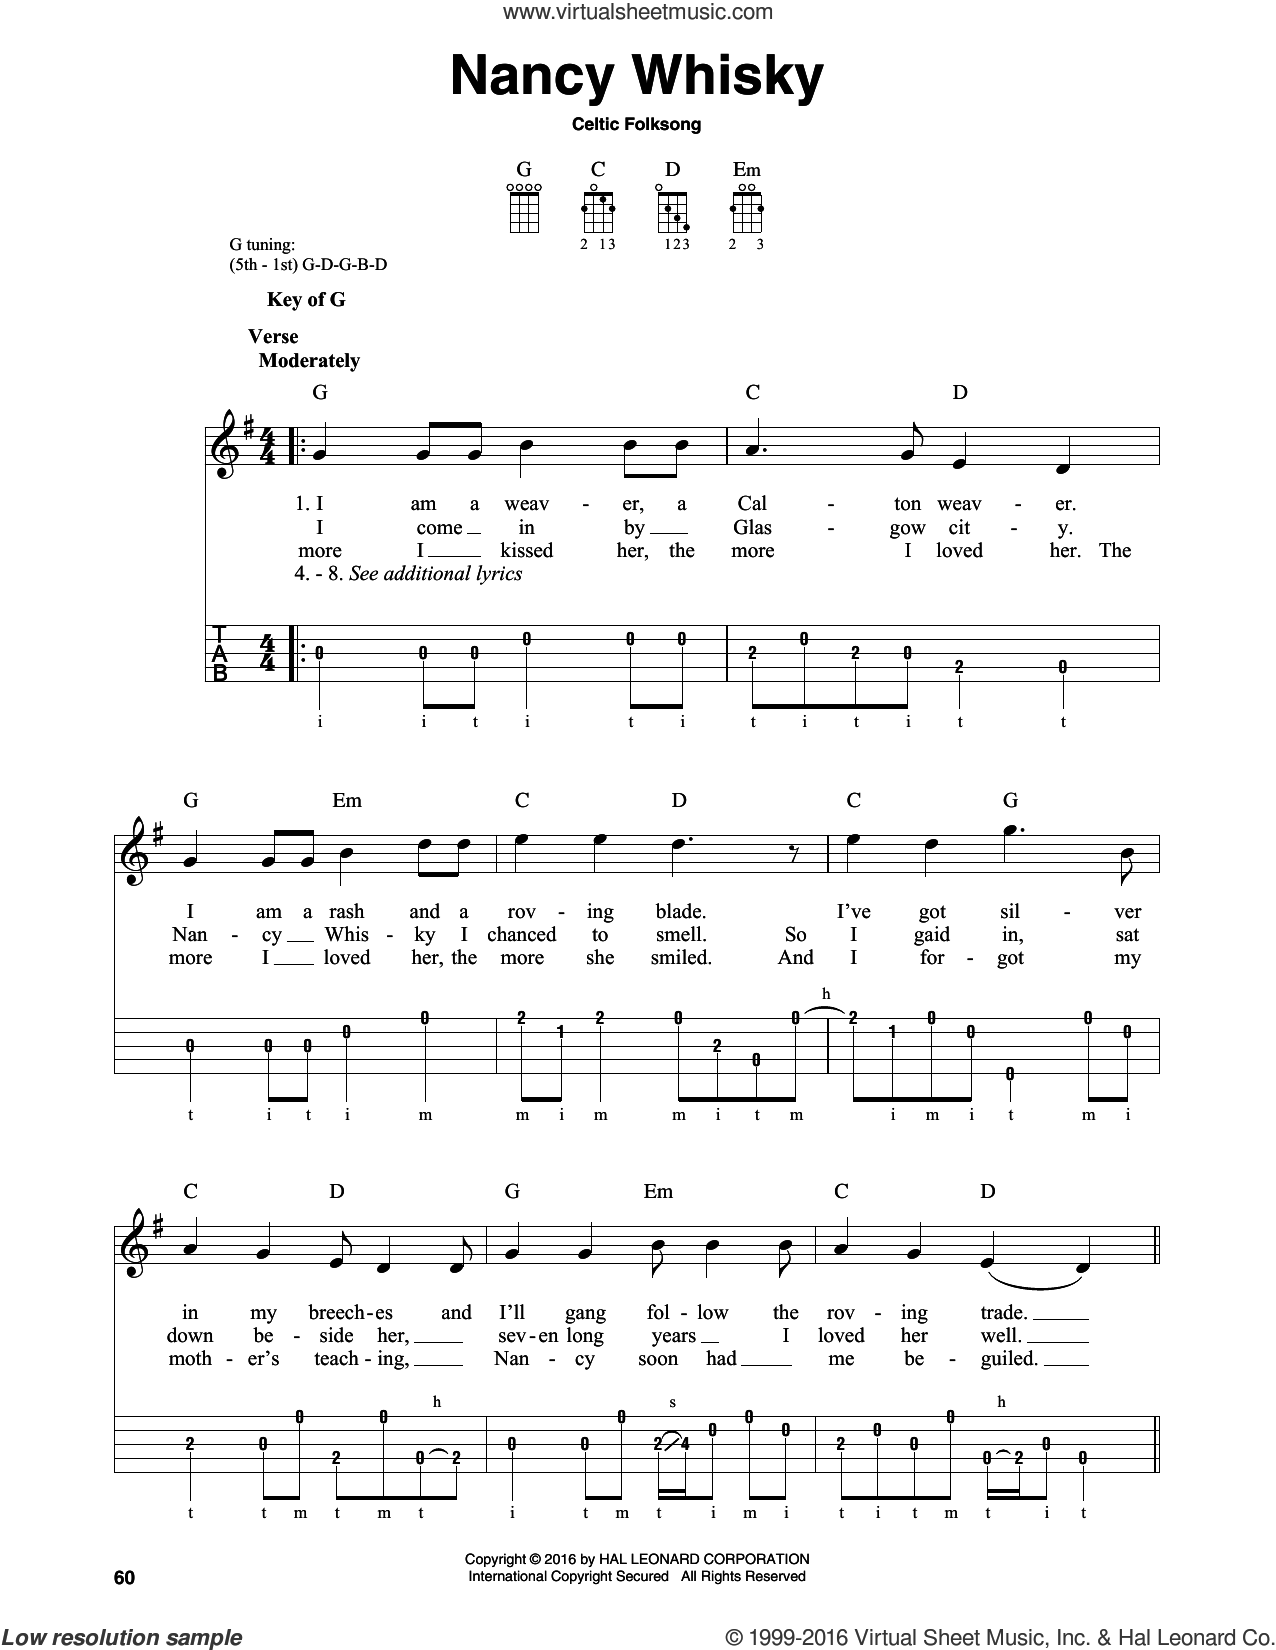 Nancy Whisky sheet music for banjo solo by Celtic Folksong, intermediate skill level